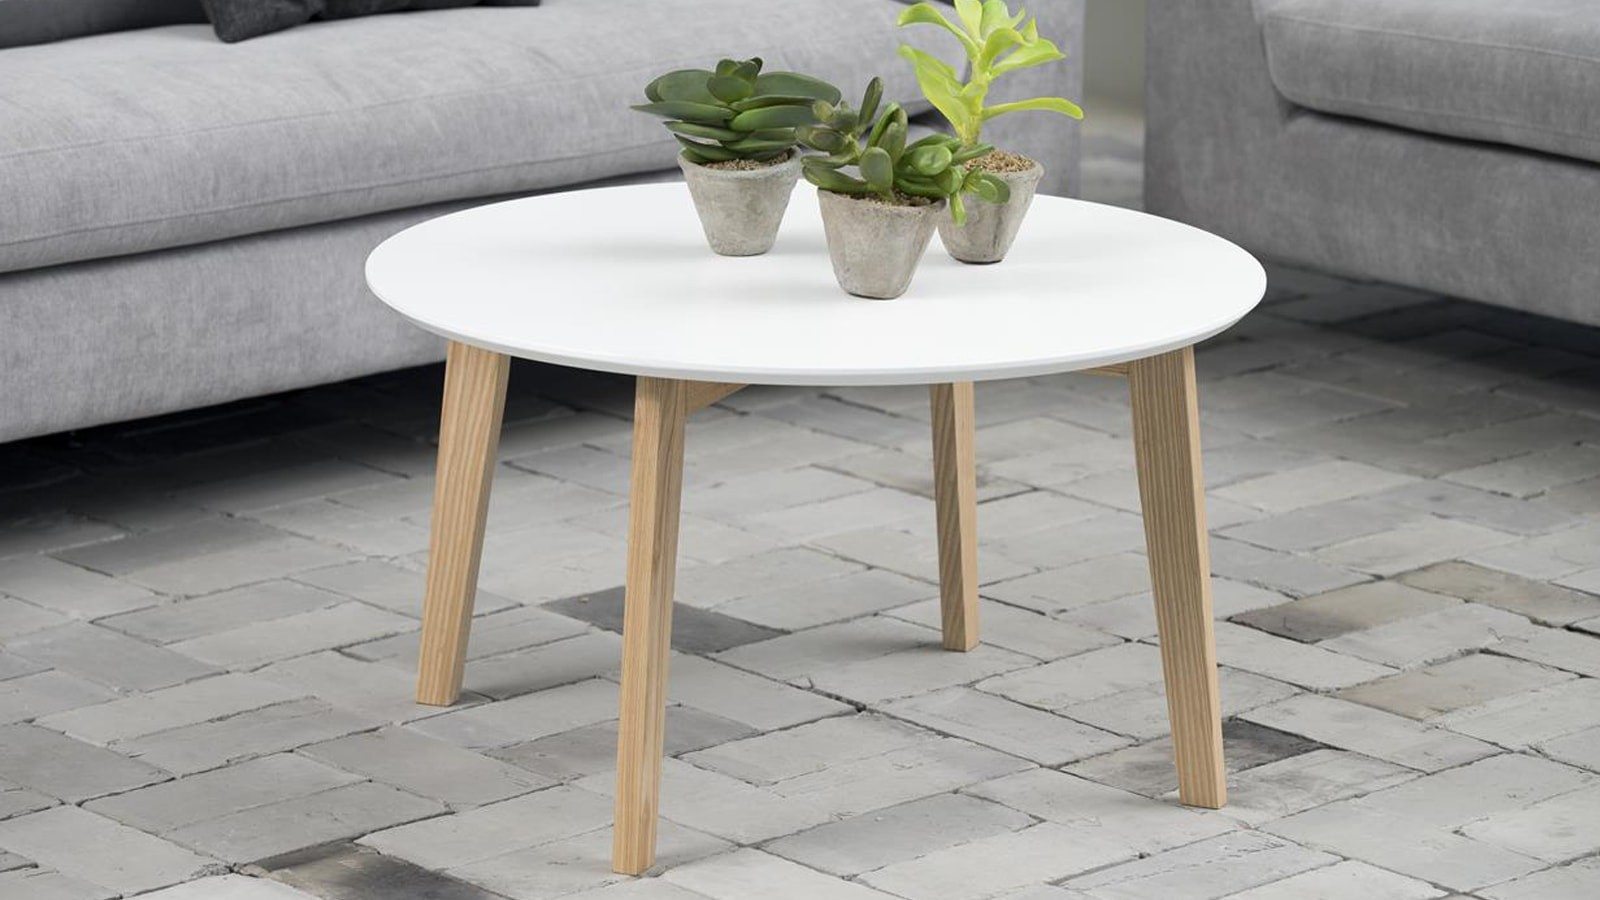 Table Basse Ronde Scandinave serapportantà Chaise Gaby Gifi